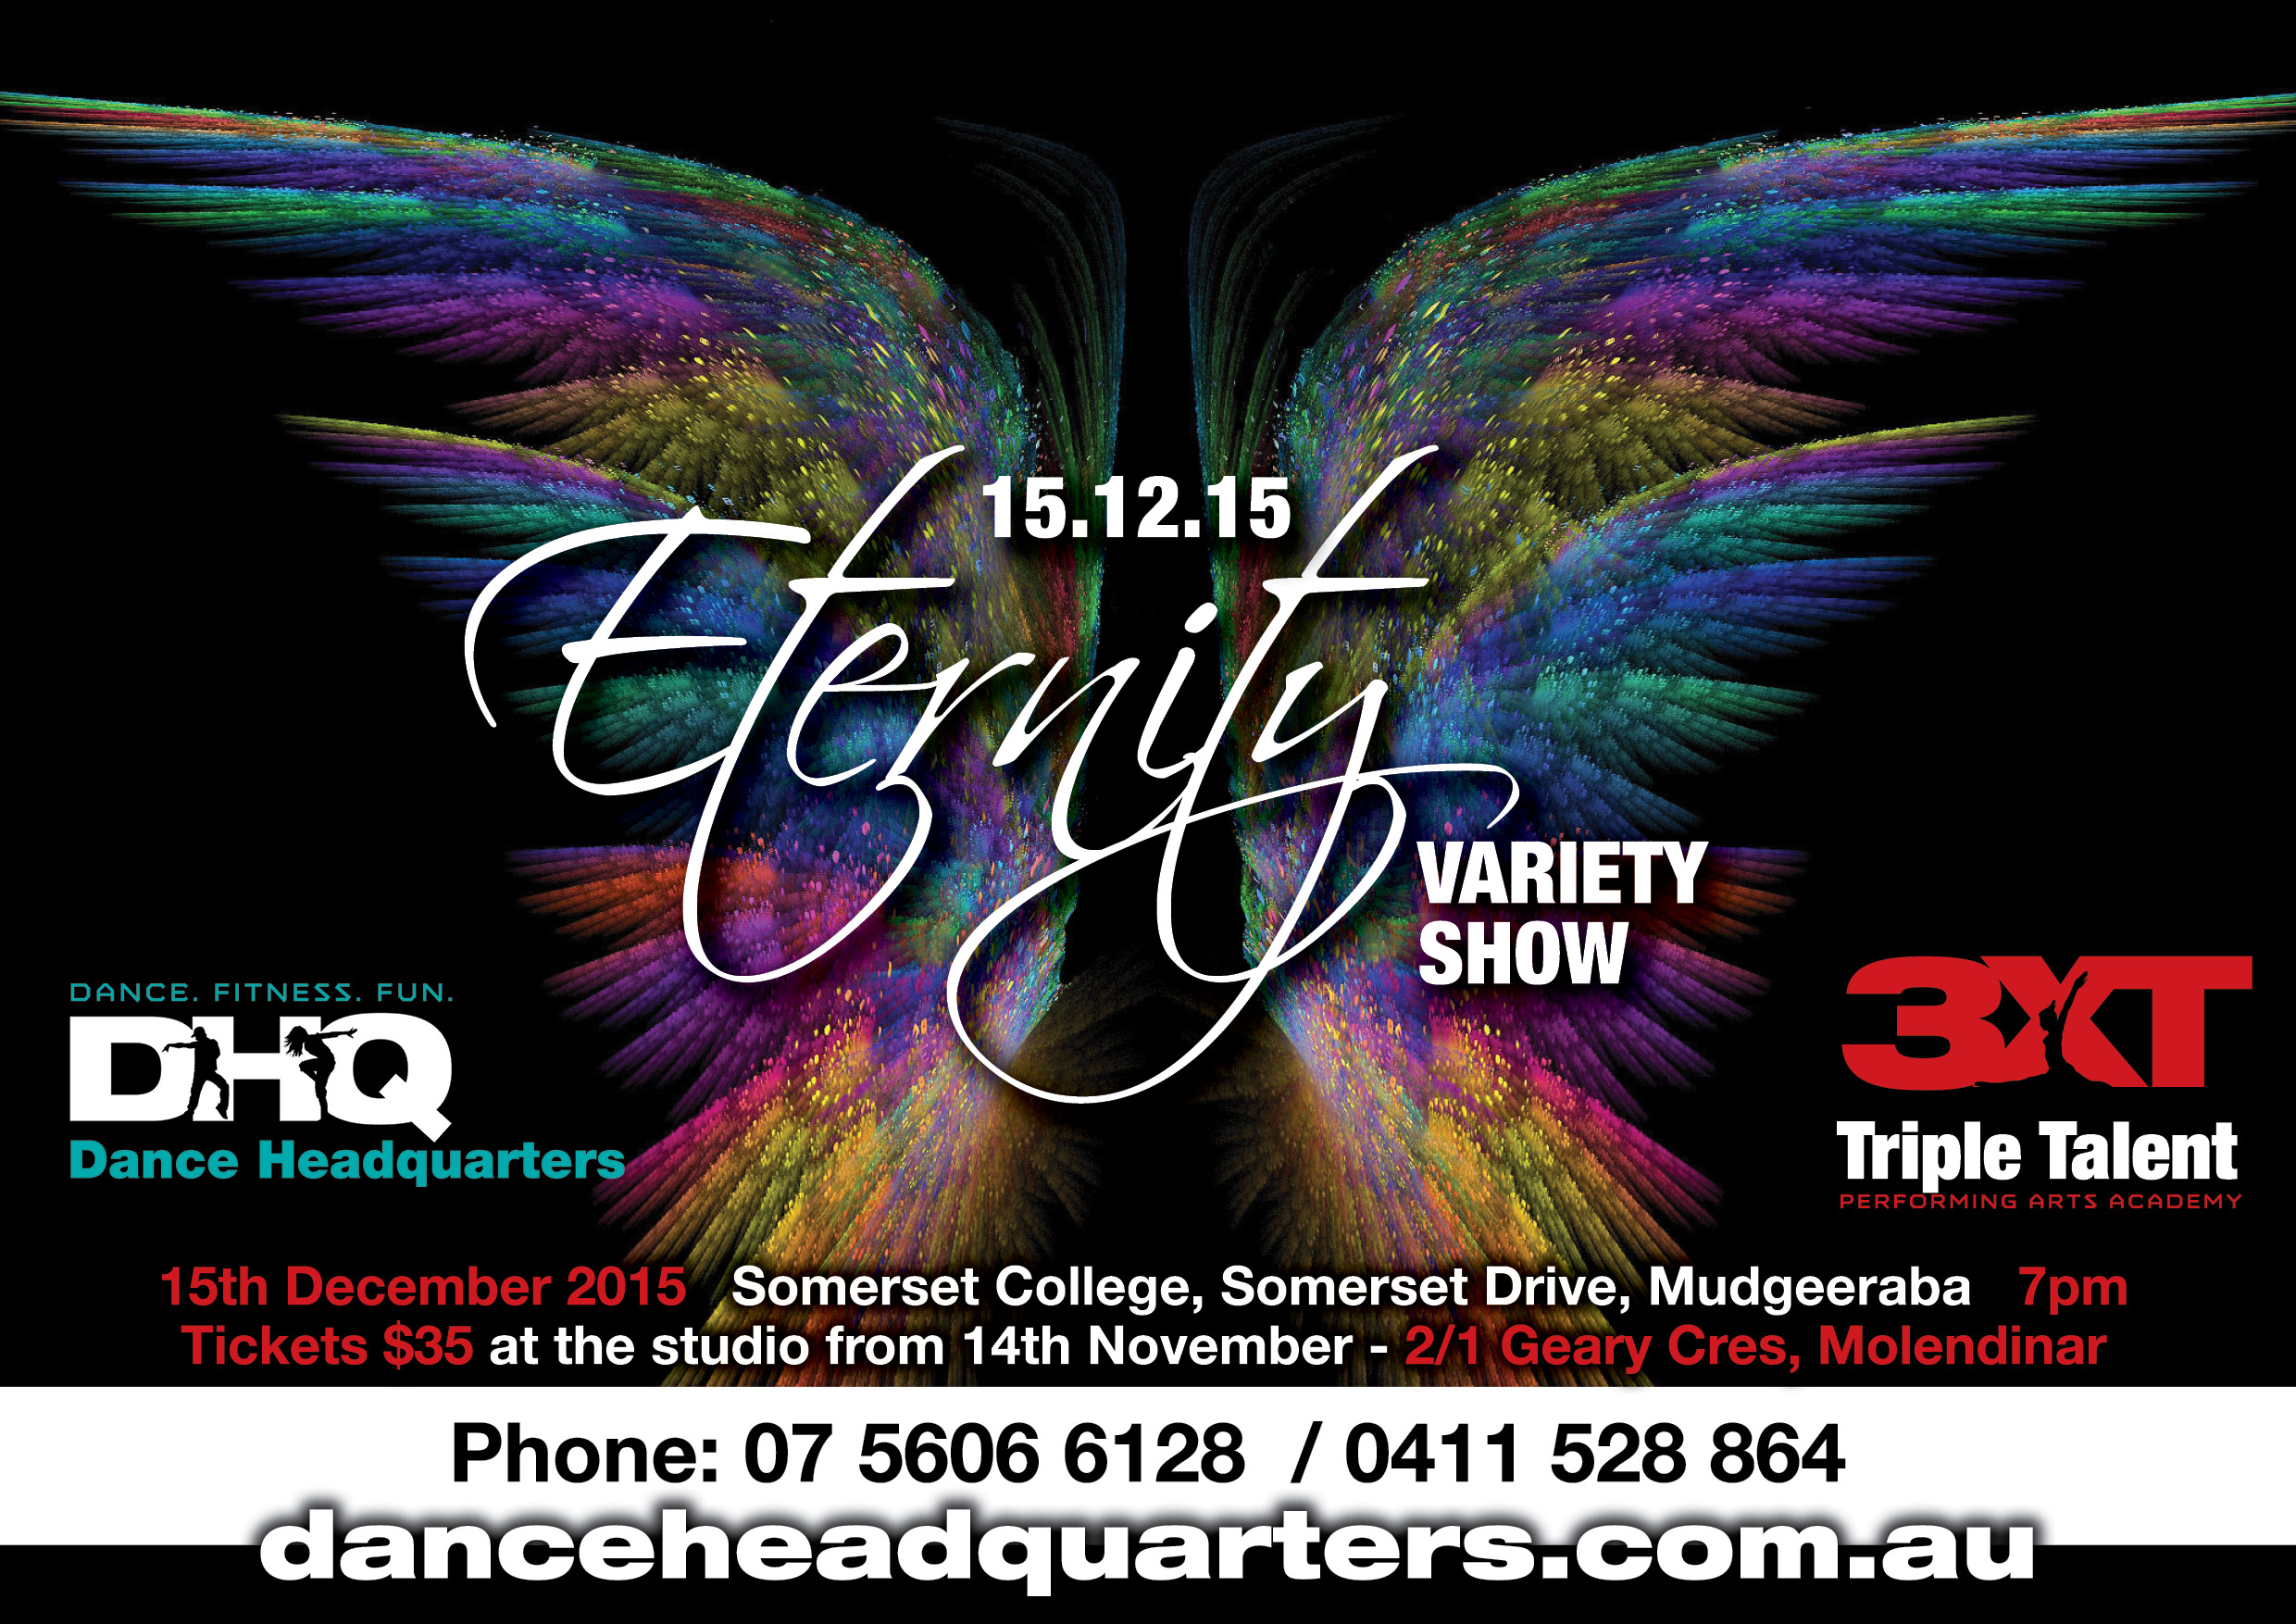 DanceHQ Eternity A5 flyer